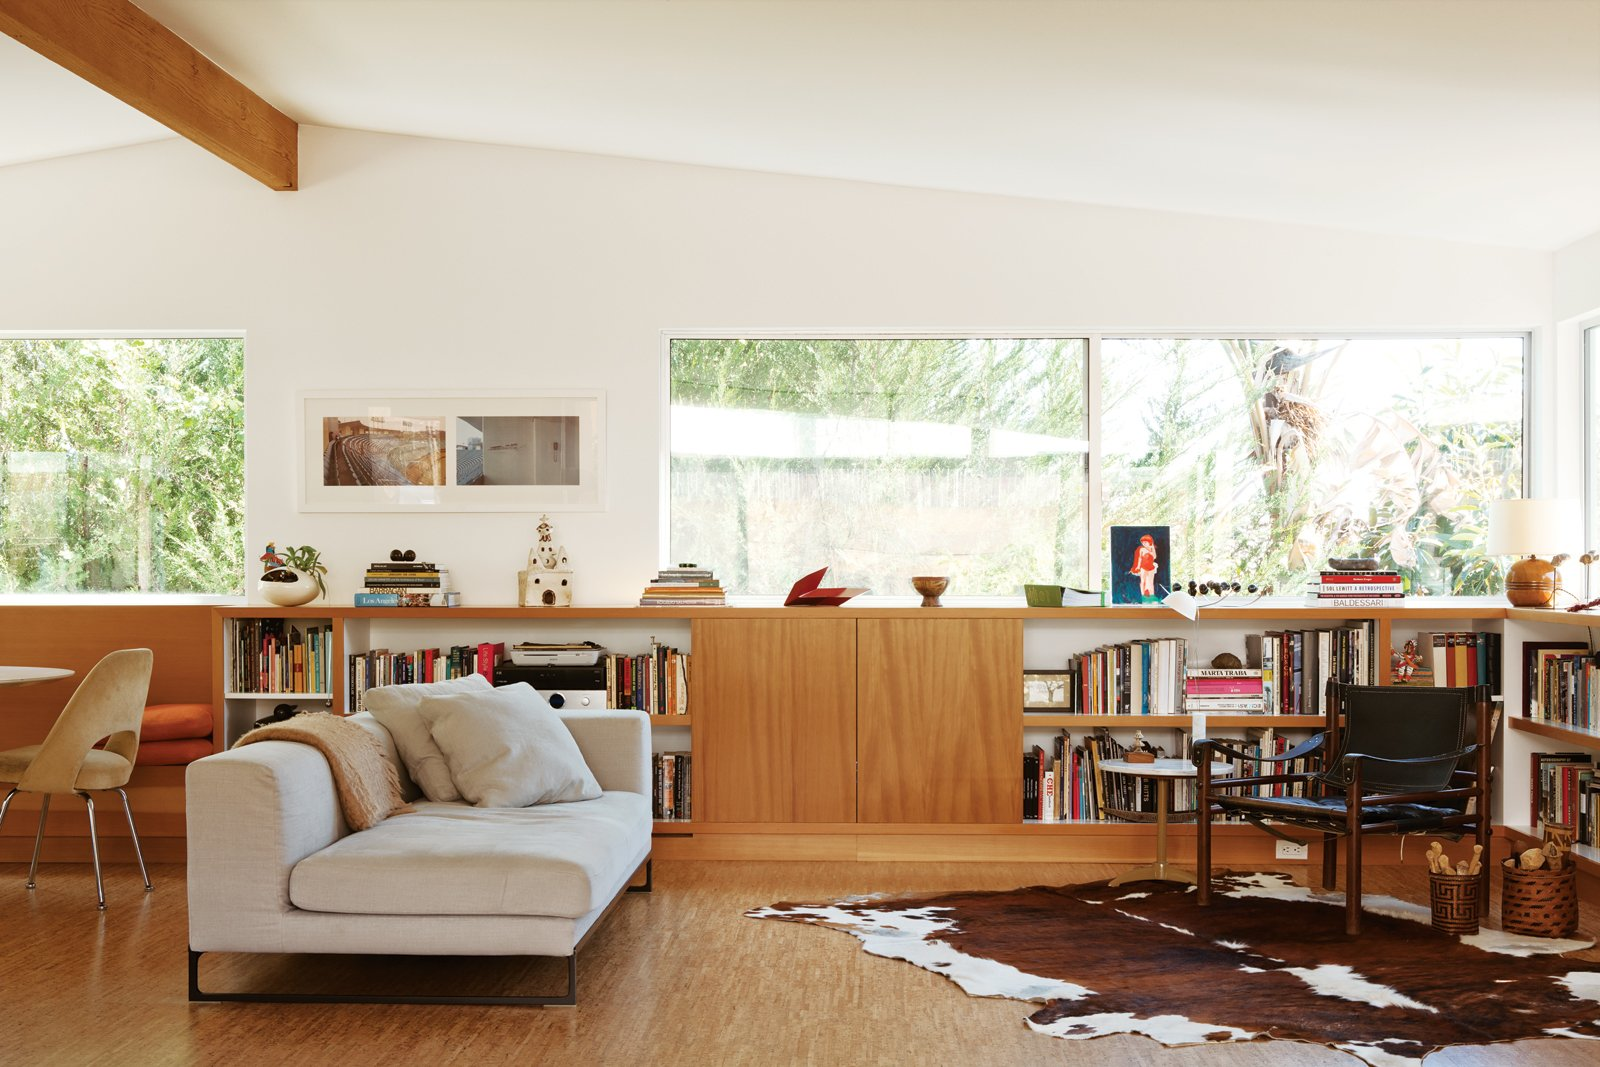 The living room has a Dadone sofa by Antonio Citterio for B&B Italia and a Safari chair by Arne Norell.  Photo 1 of 13 in A Fresh Dose of Color Livens Up This Midcentury Los Angeles Home